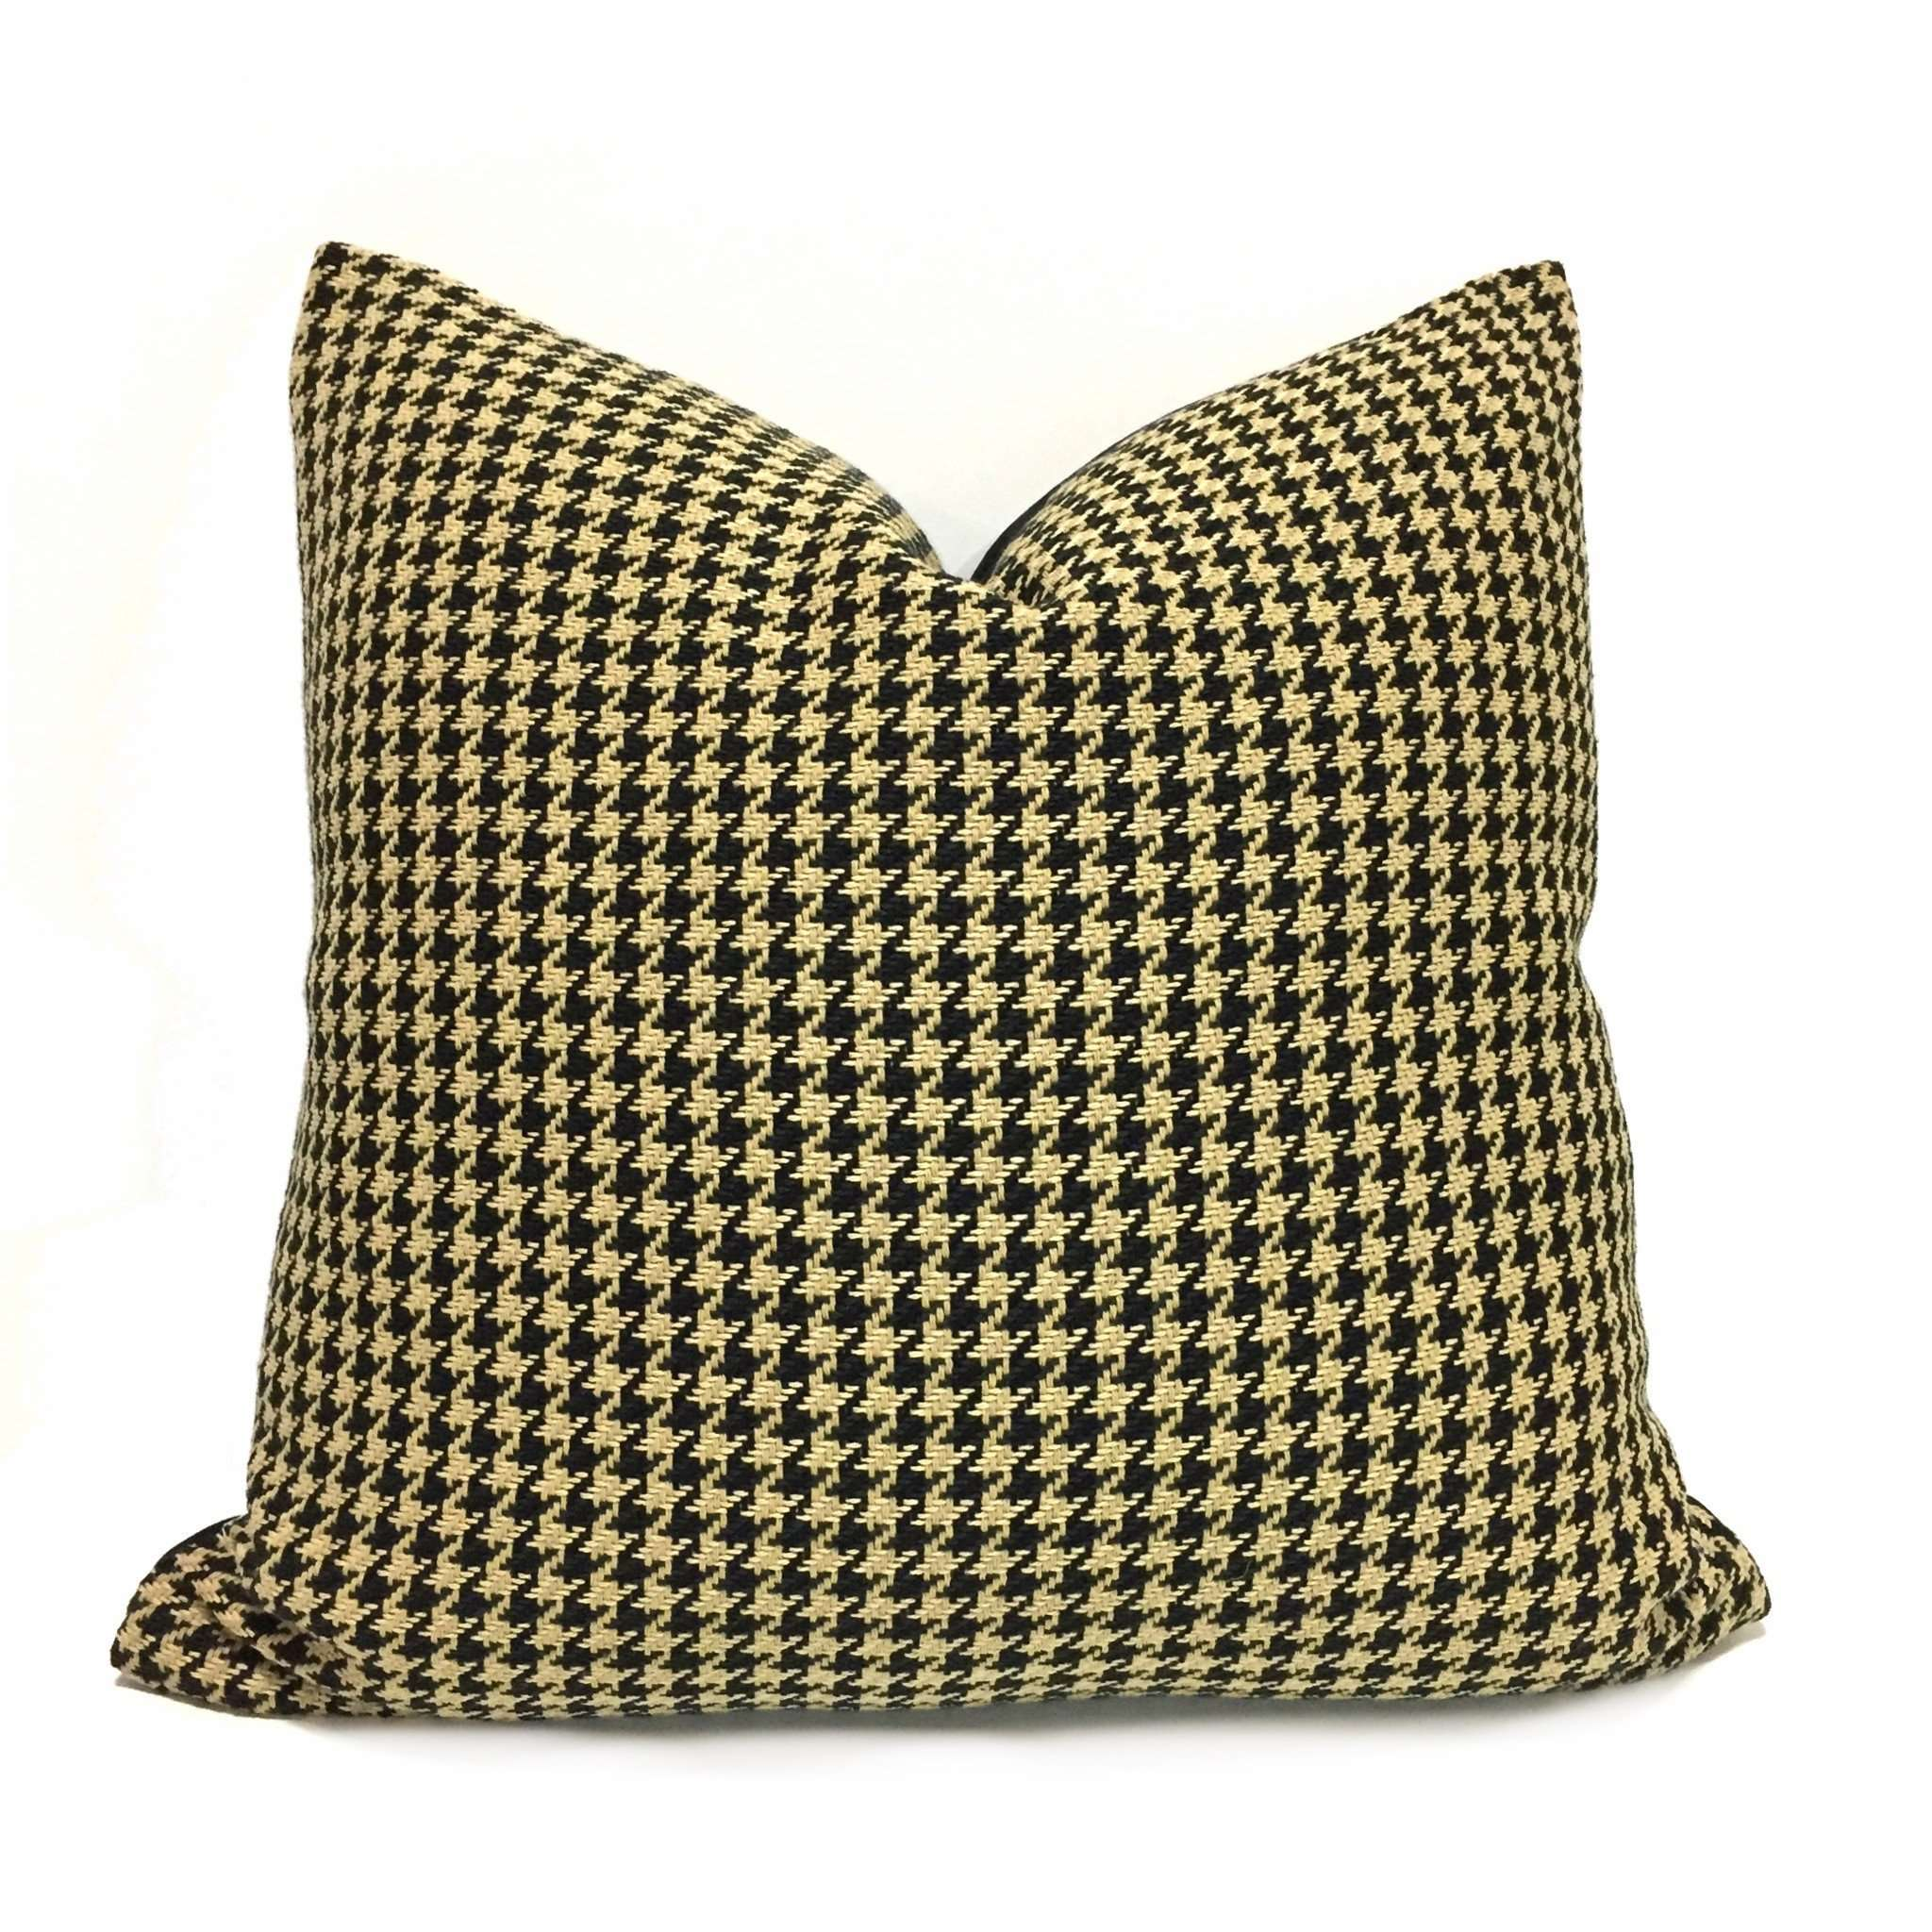 Ralph Lauren Cambrook Ebony Black Tan Houndstooth Pattern Pillow Cover by Aloriam